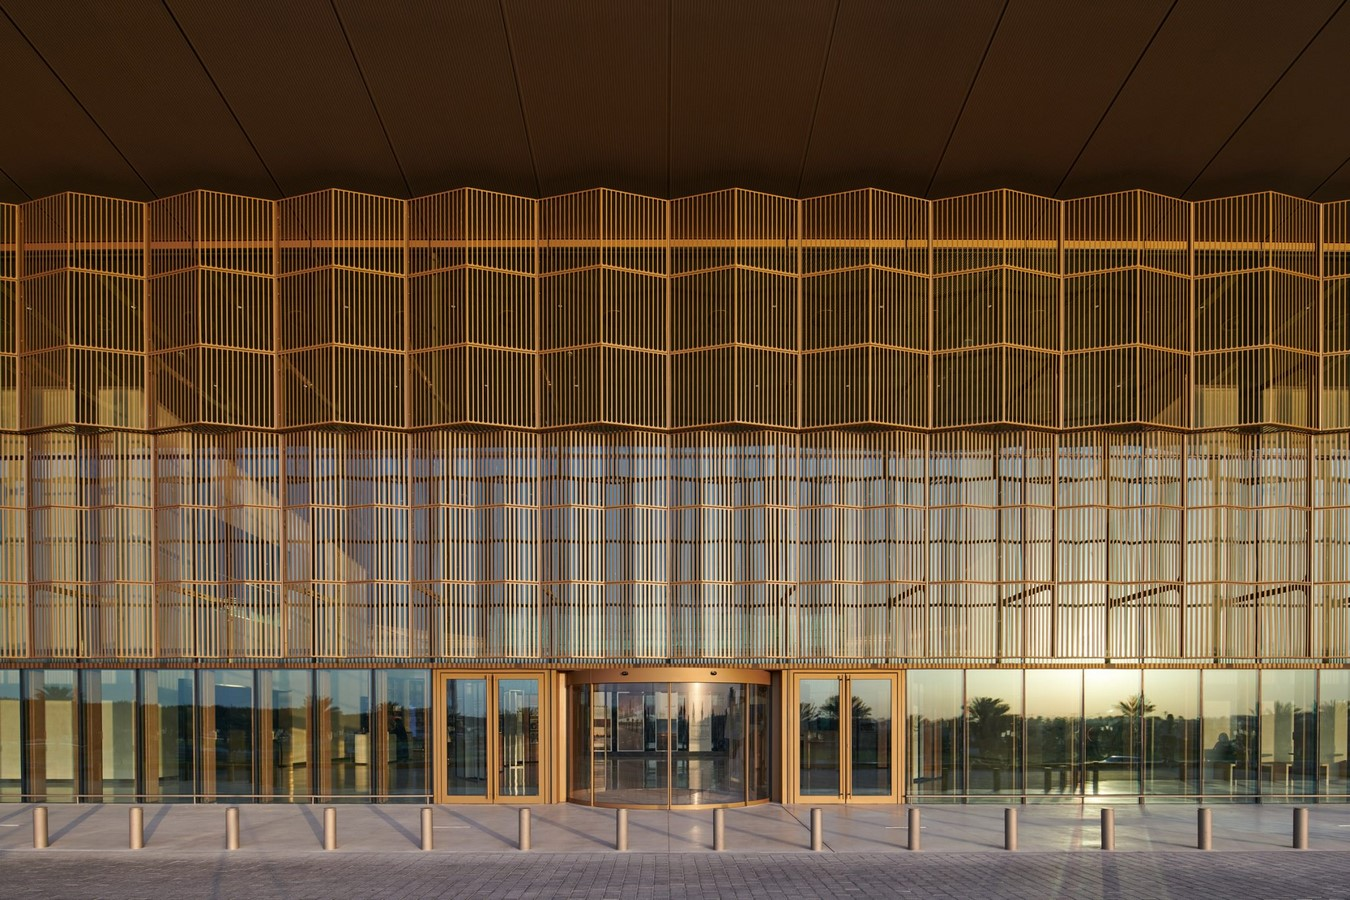 New Library And Culture Centre With Large Floating Roof In Sharjah completed by Foster + Partners - Sheet2